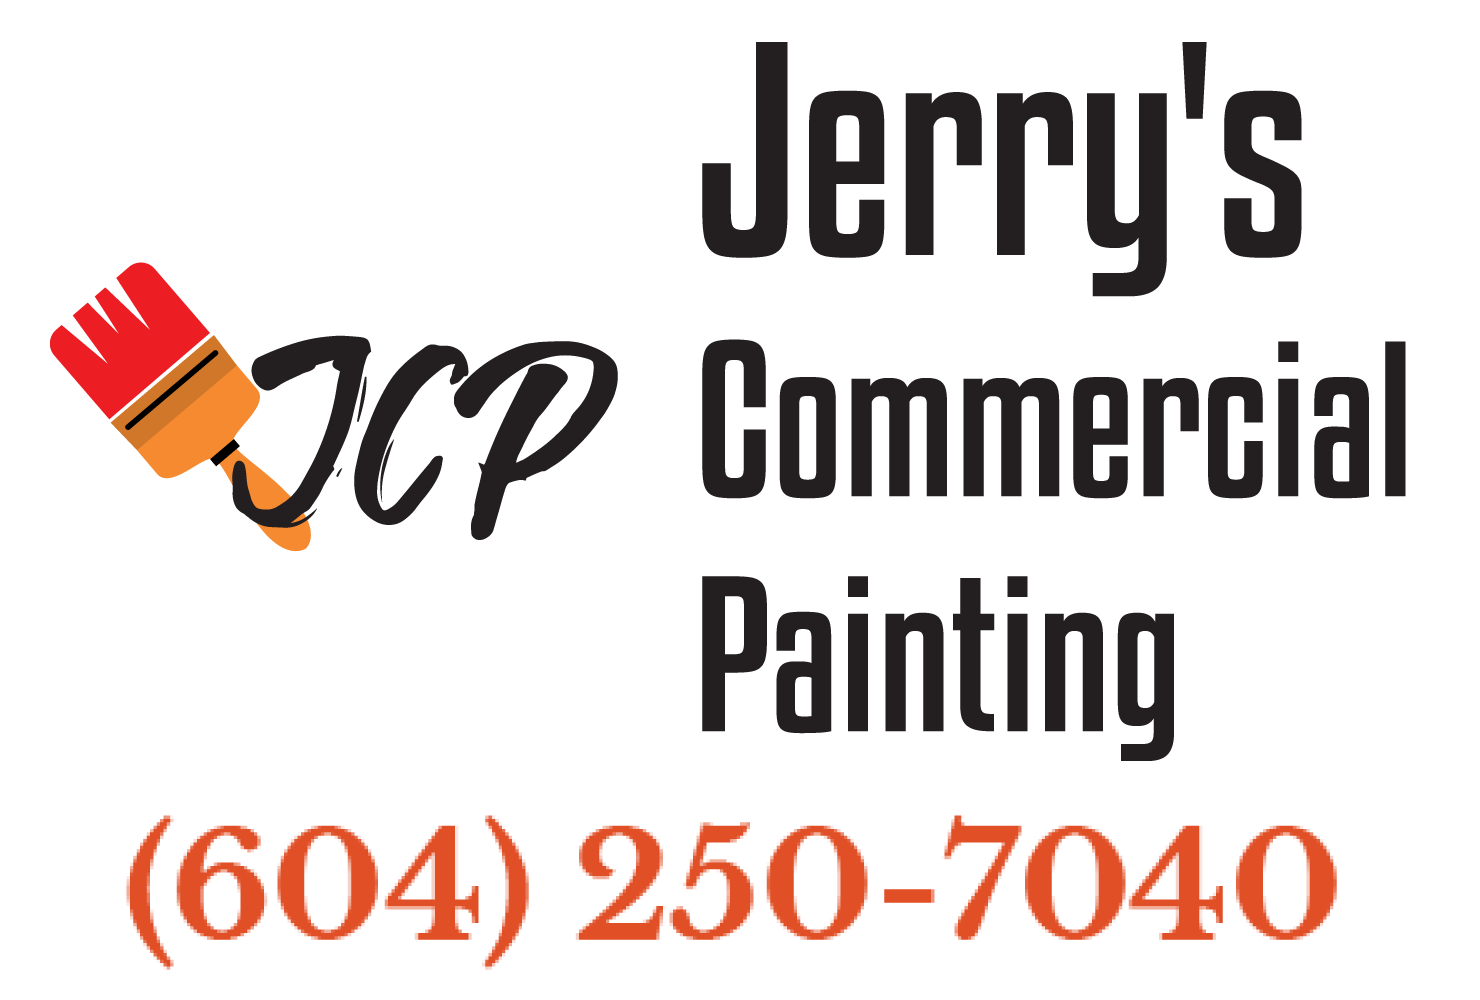 Jerry's Commercial Painting Logo